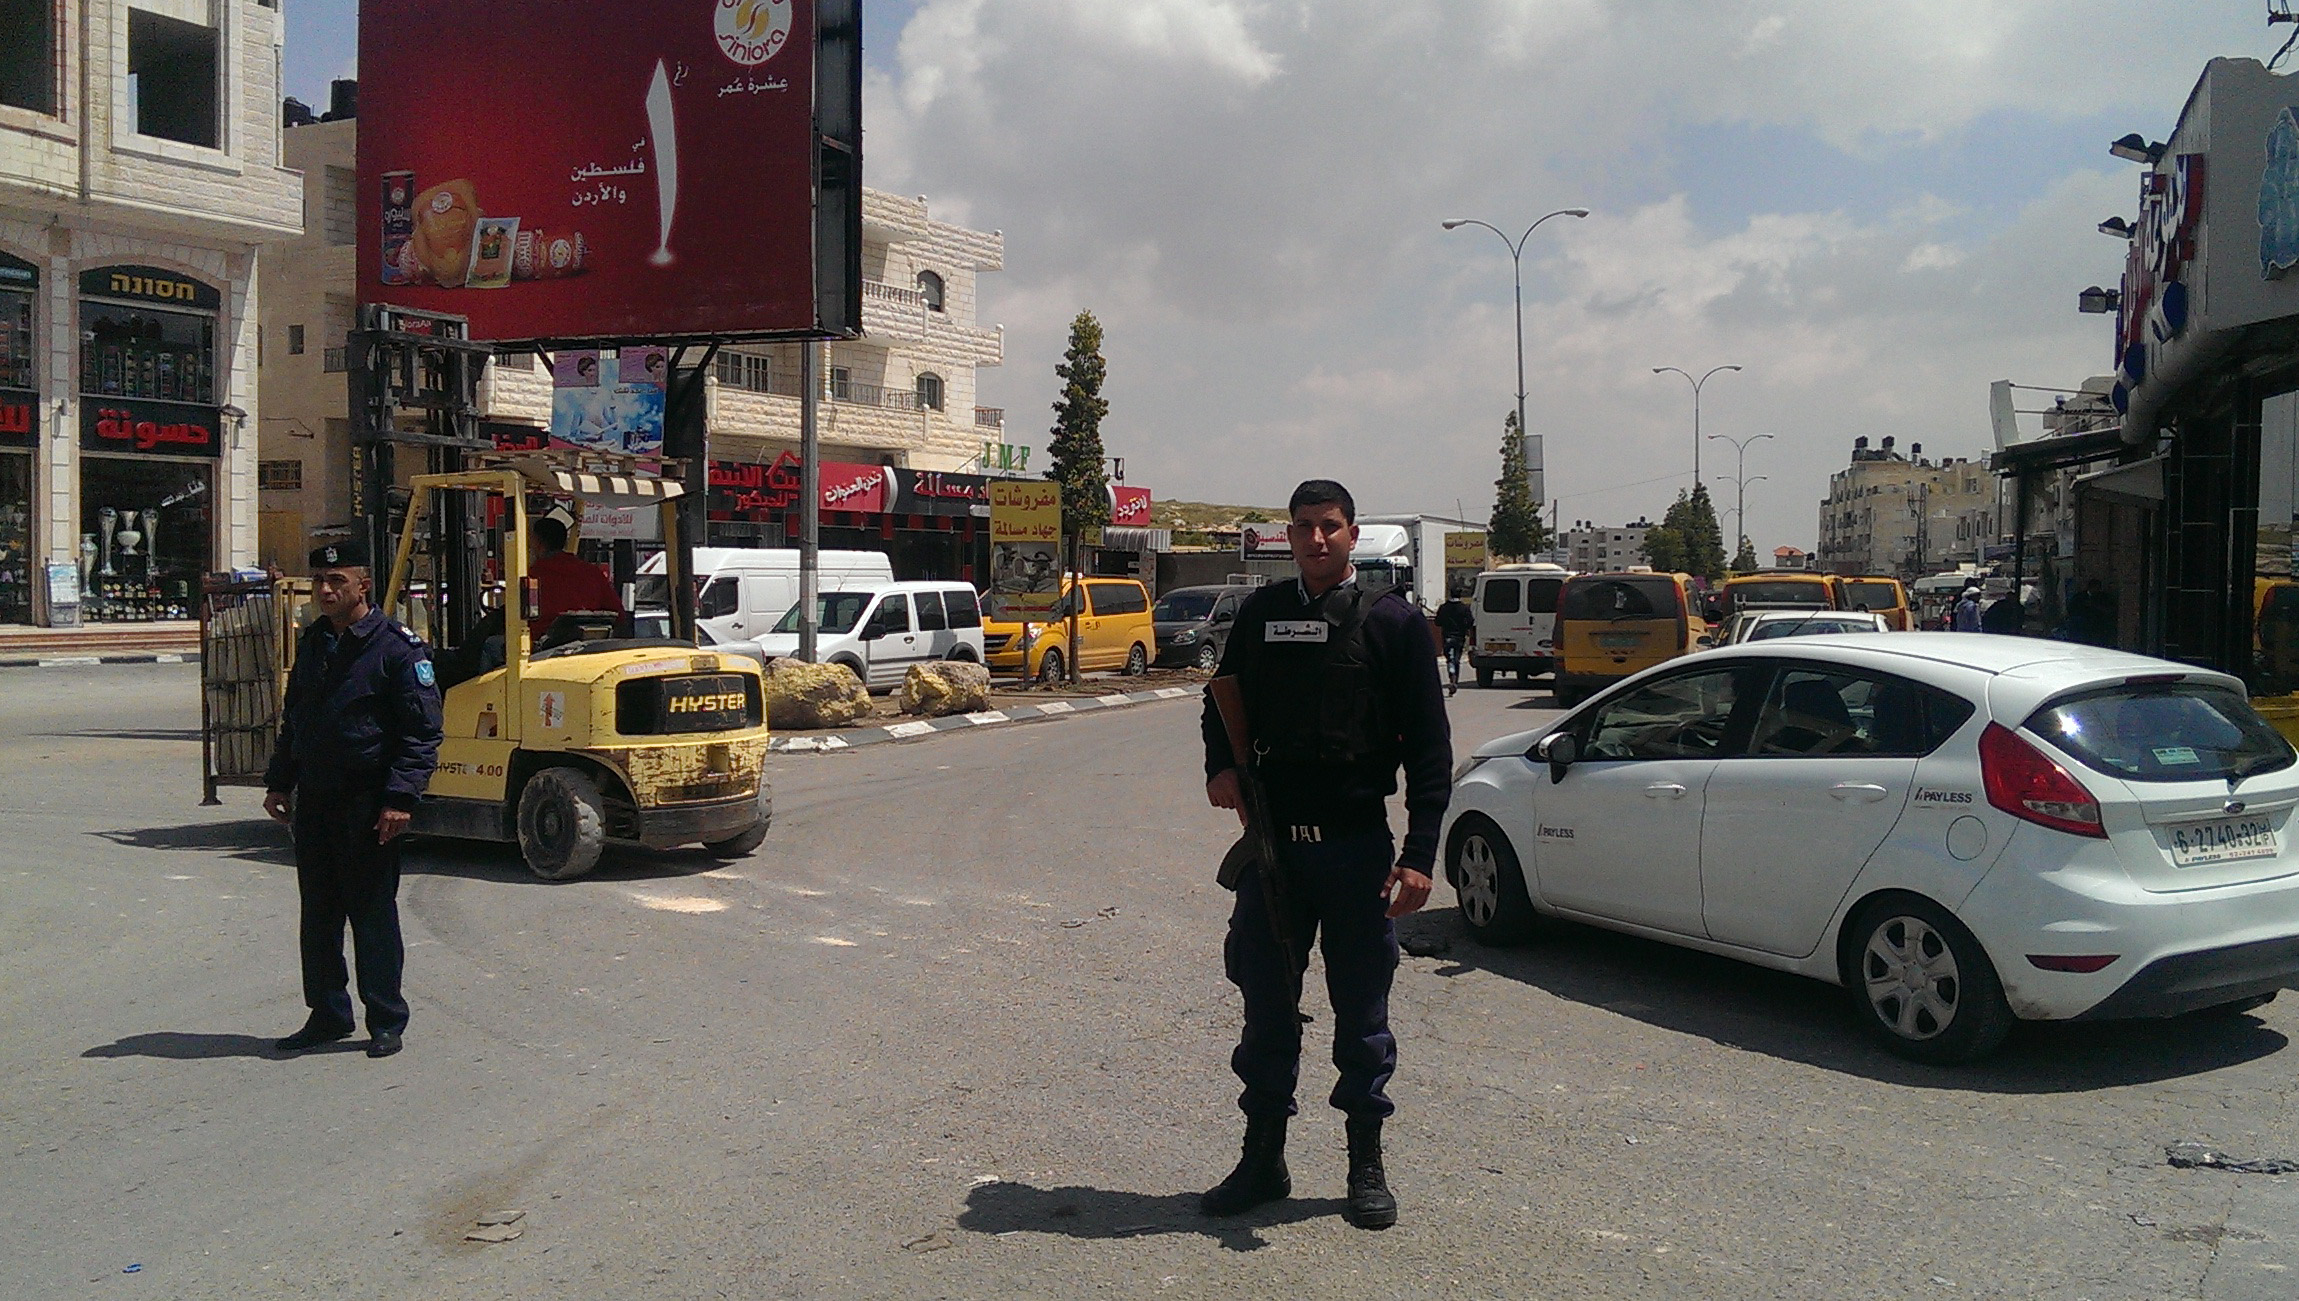 For the first time since the second intifada, uniformed and armed police could patrol the streets of Abu Dis.